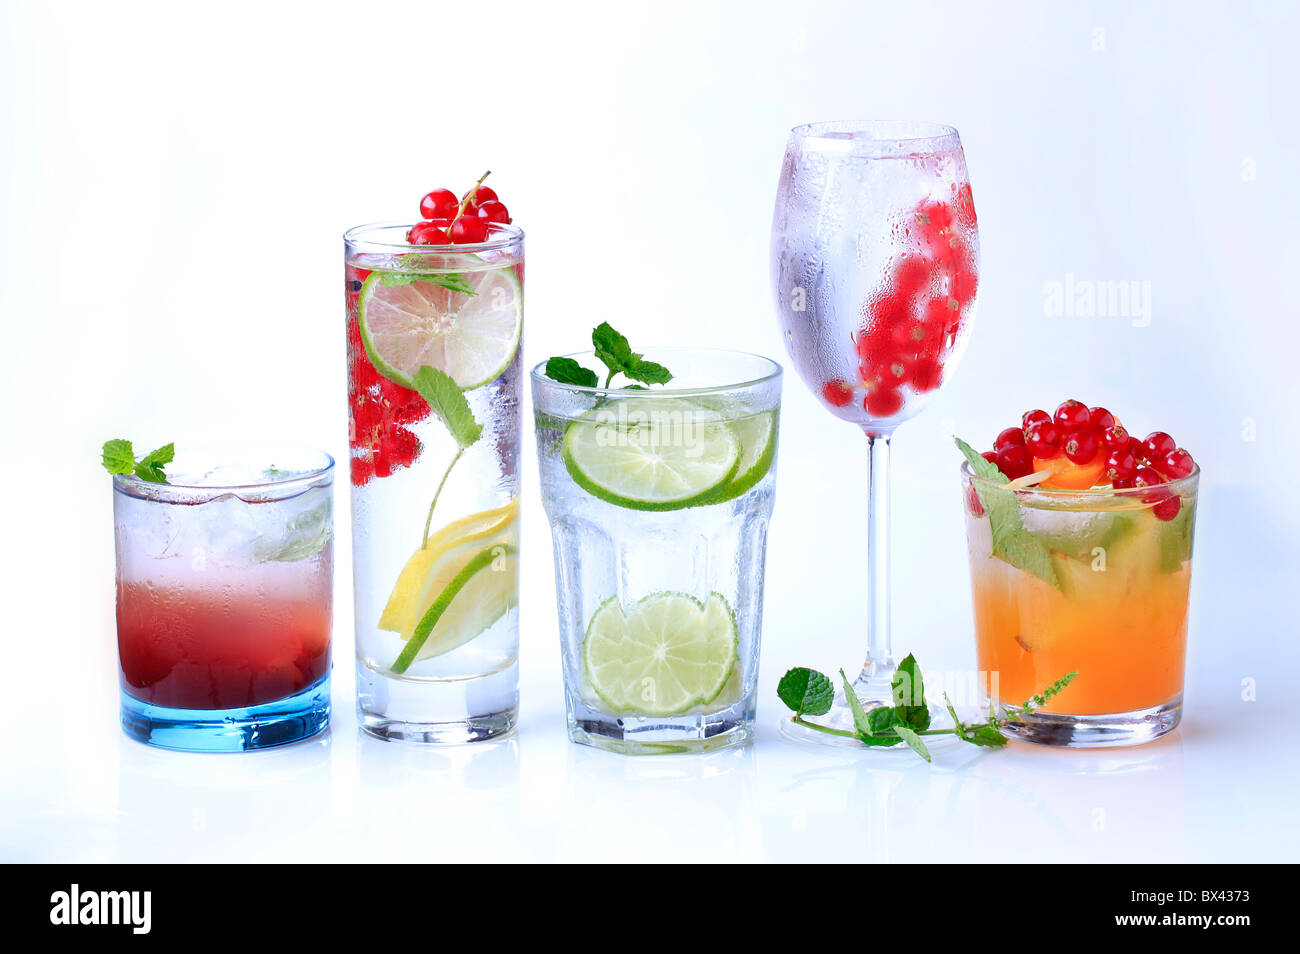 Iced drinks garnished with fresh fruit - Stock Image